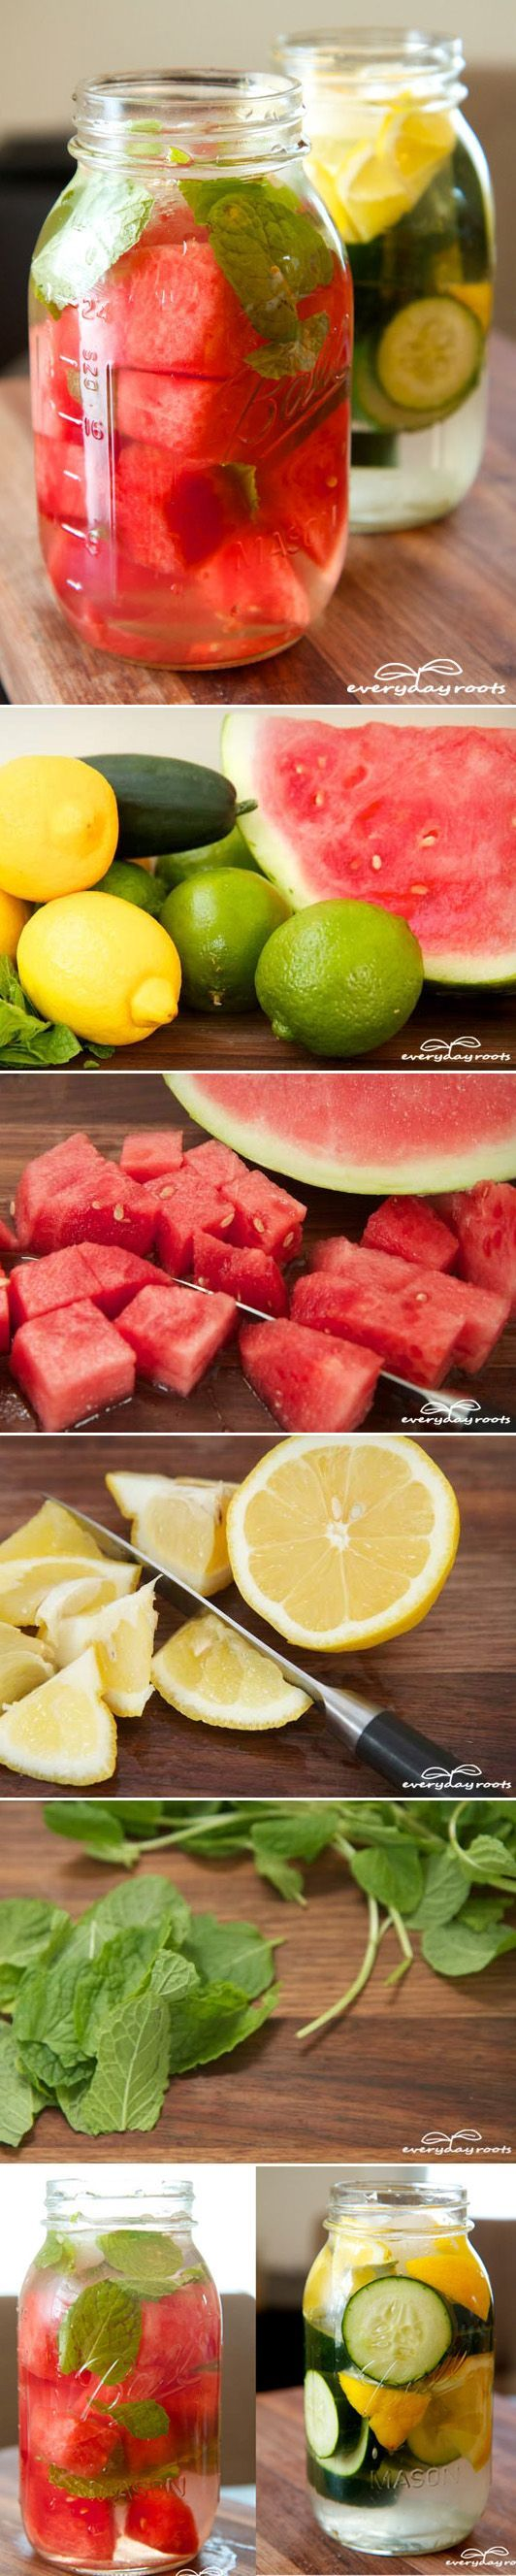 Make Your Own Detox Drink for Daily Enjoyment & Cleansing. Recipe. Included: Watermelon/cucumber, lemon/lime, mint leaves, and water